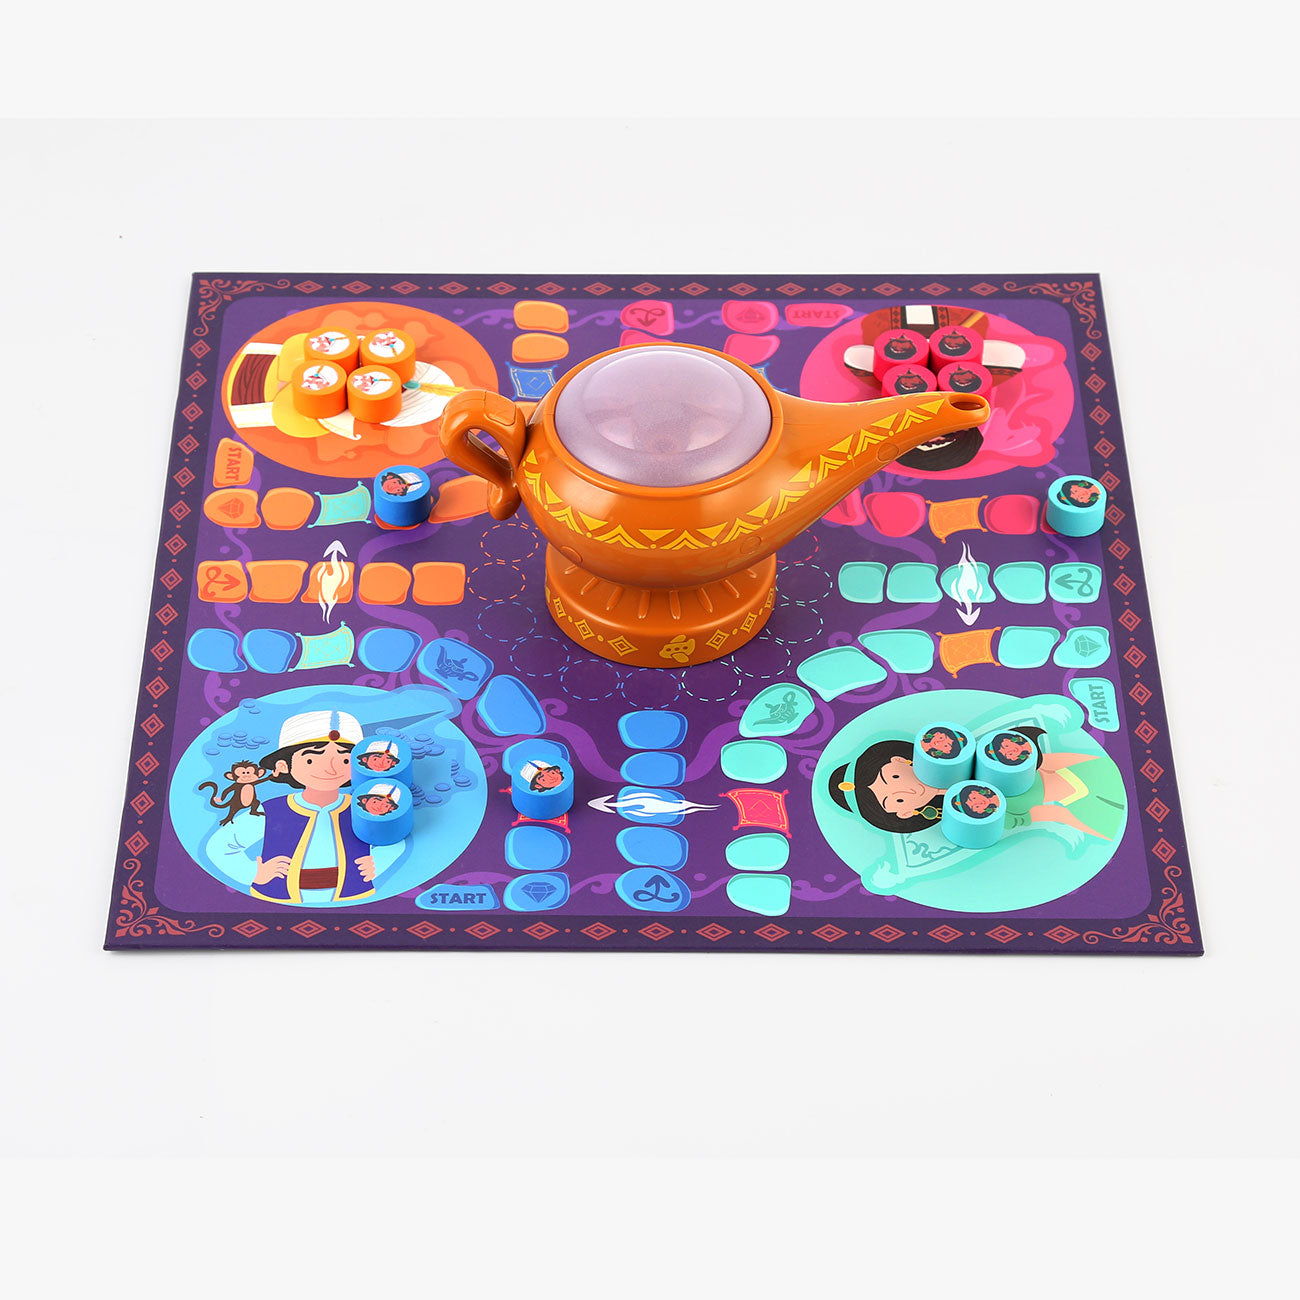 Aladdin & Magic Lamp 20 In 1 Classic Games